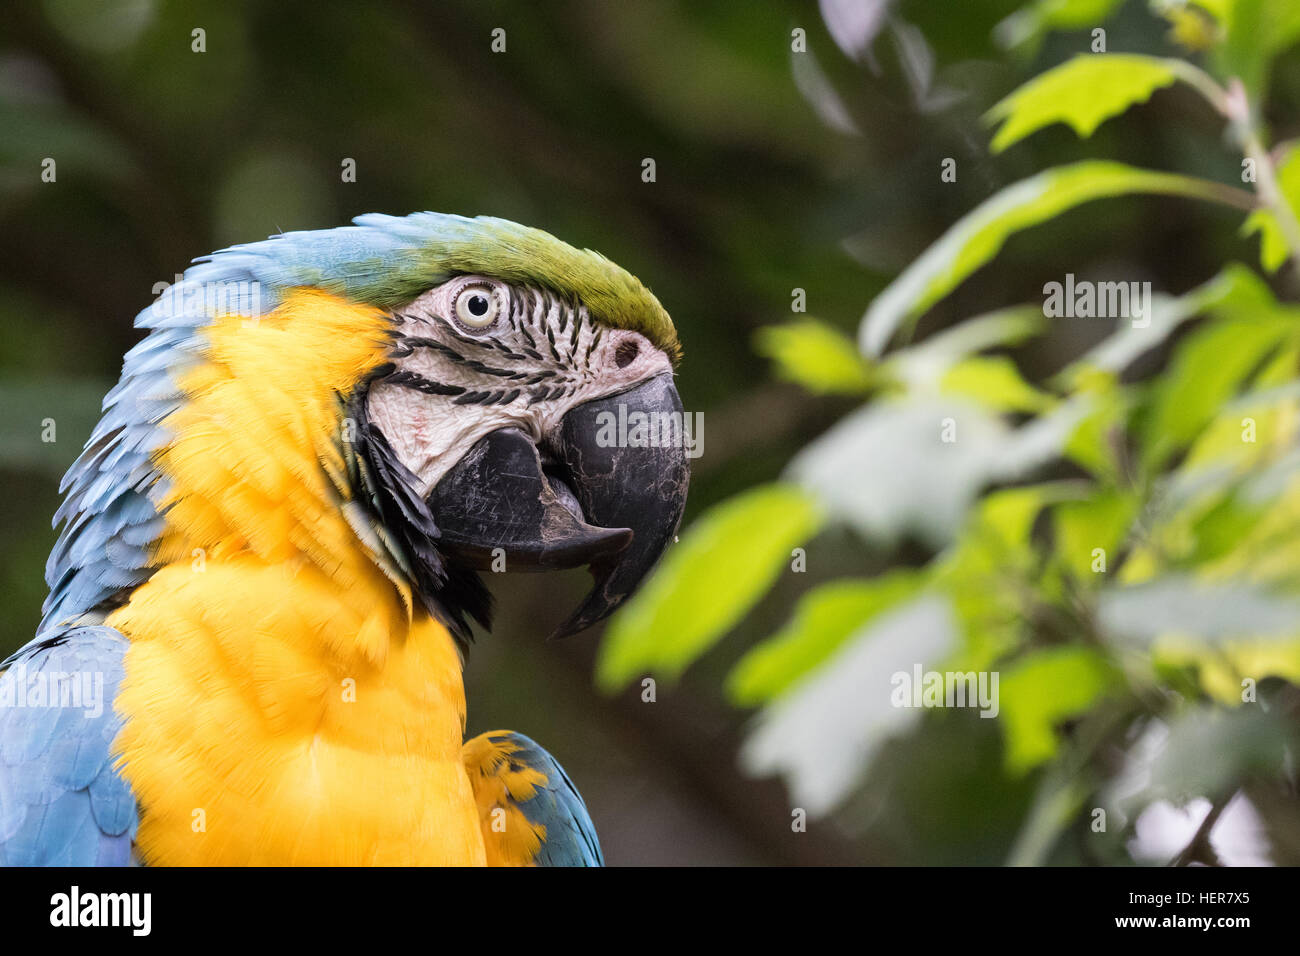 Close up of the head of a Blue and Yellow, or Blue and Gold Macaw, ( Ara ararauna ), native to South America - Stock Image